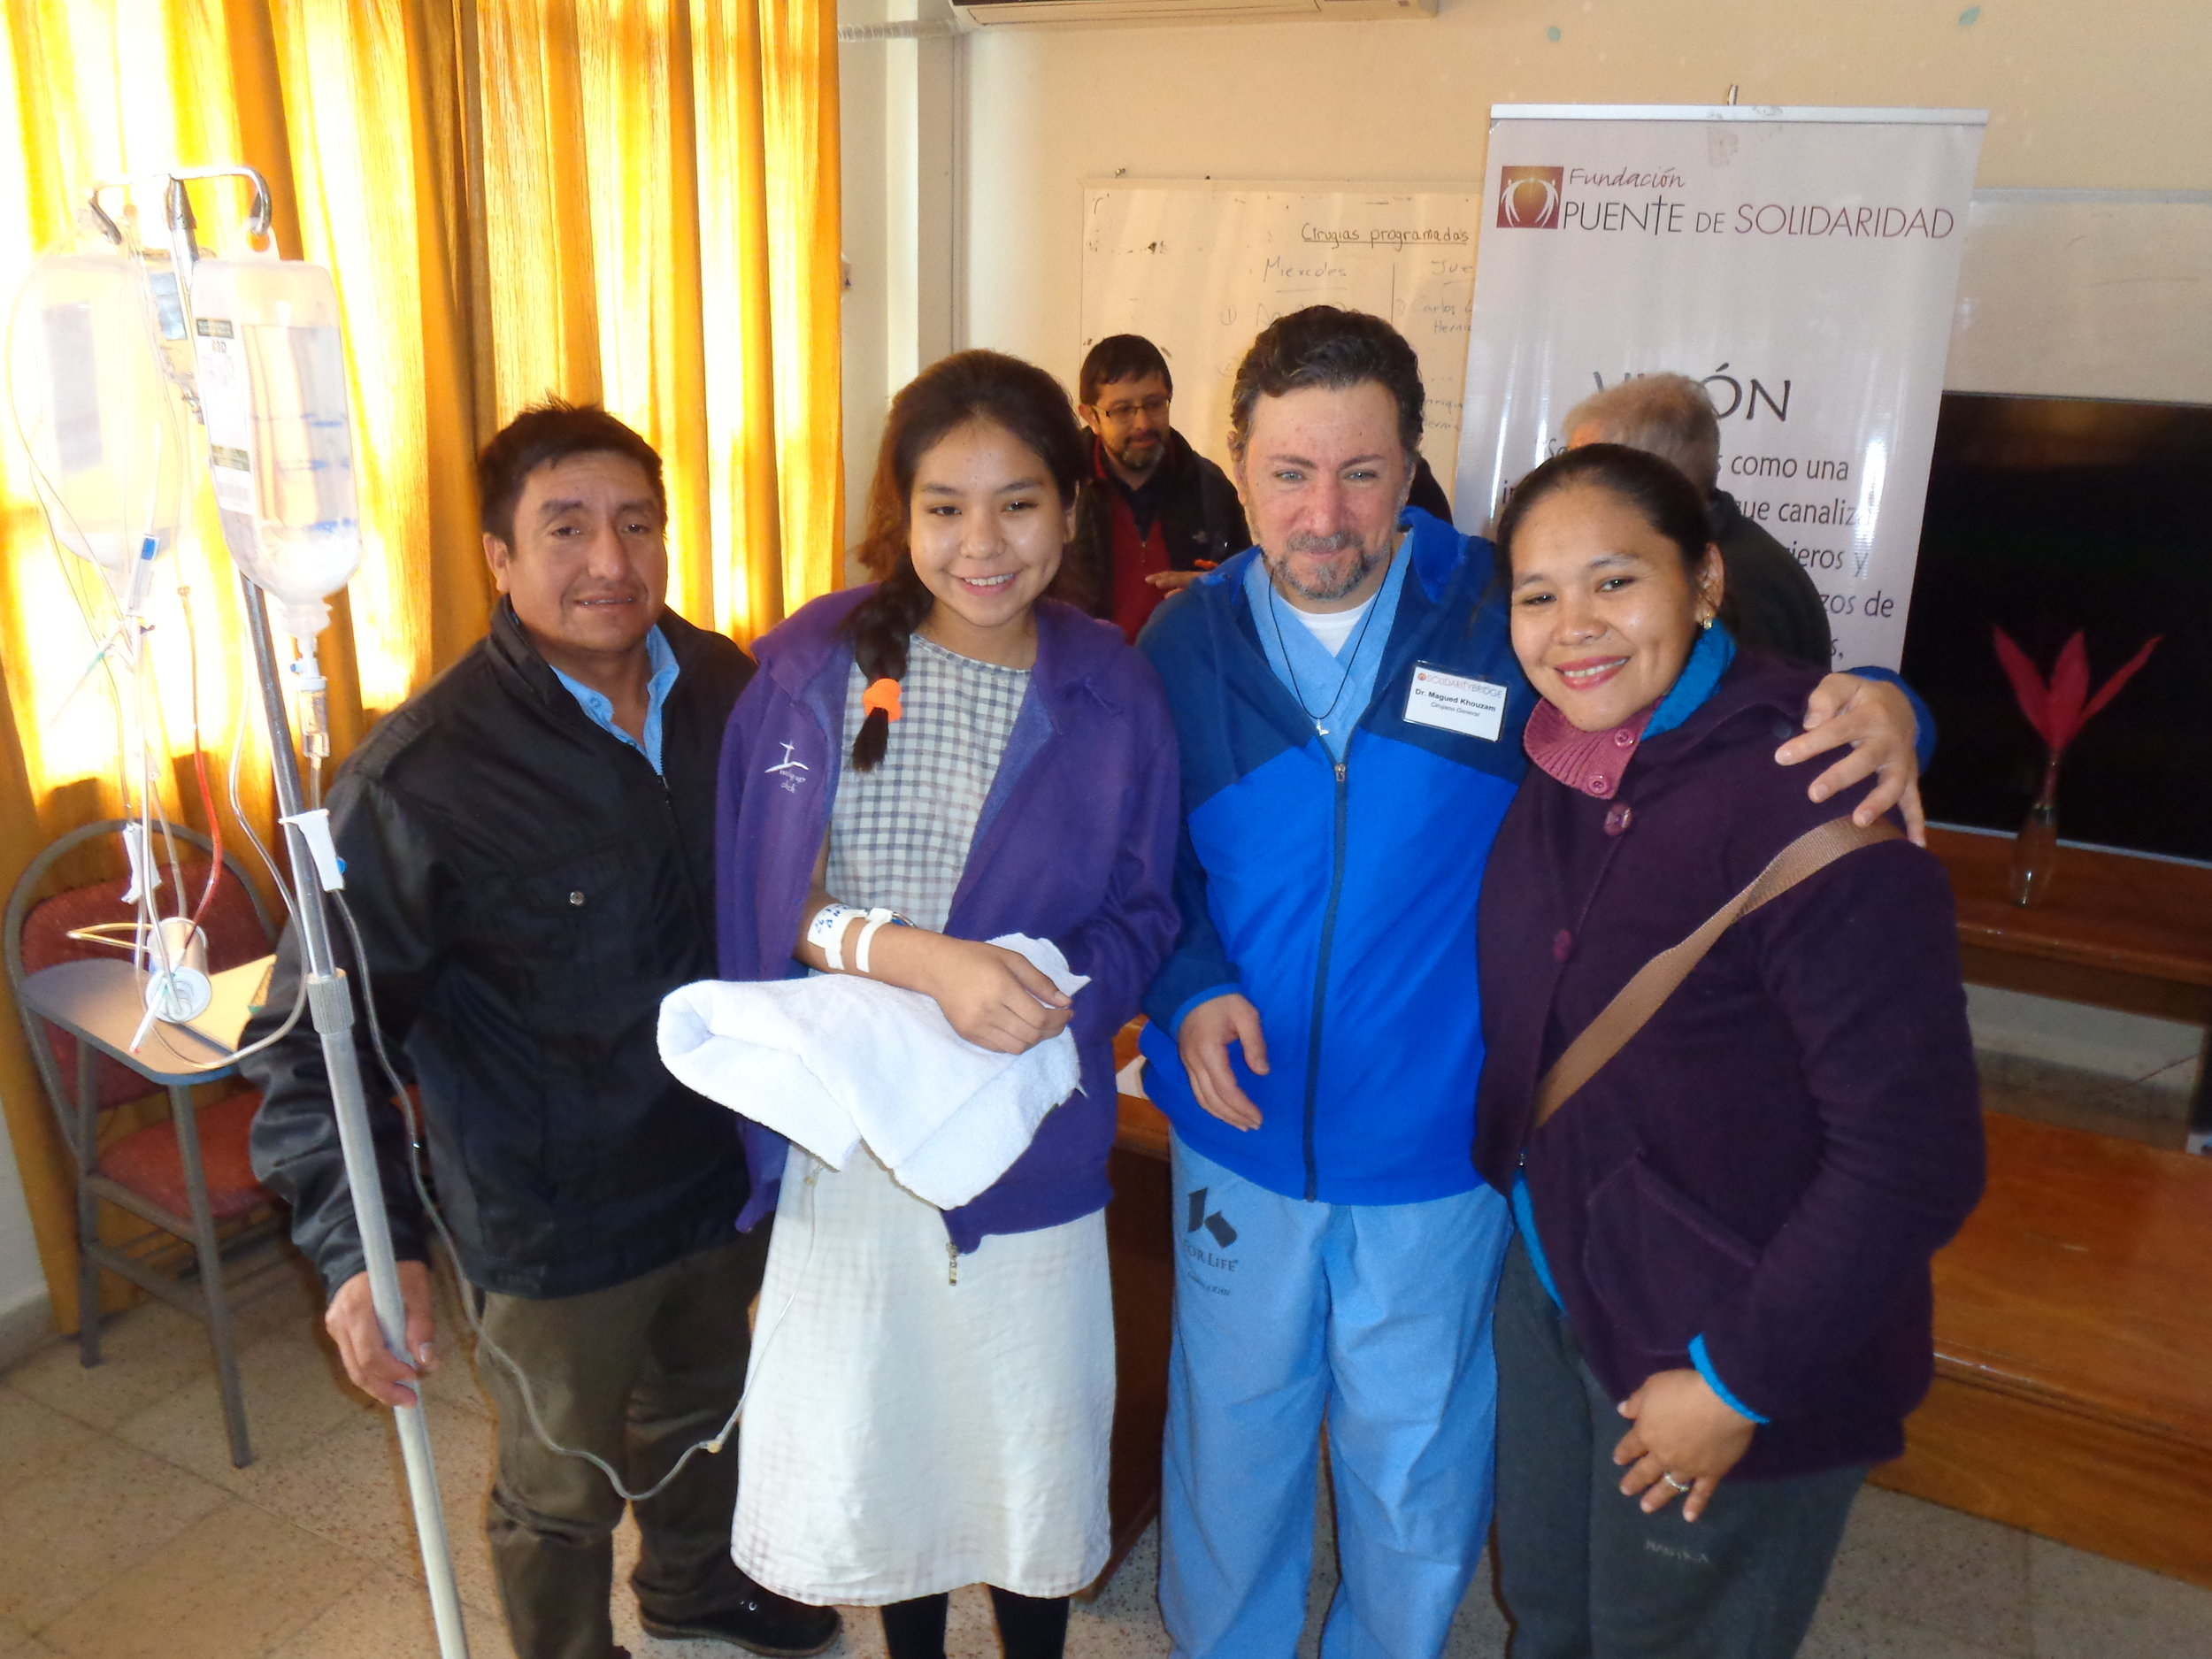 Ana Paola (second from left) is pictured here with her parents and US missioner, Dr. Magued Khouzam.